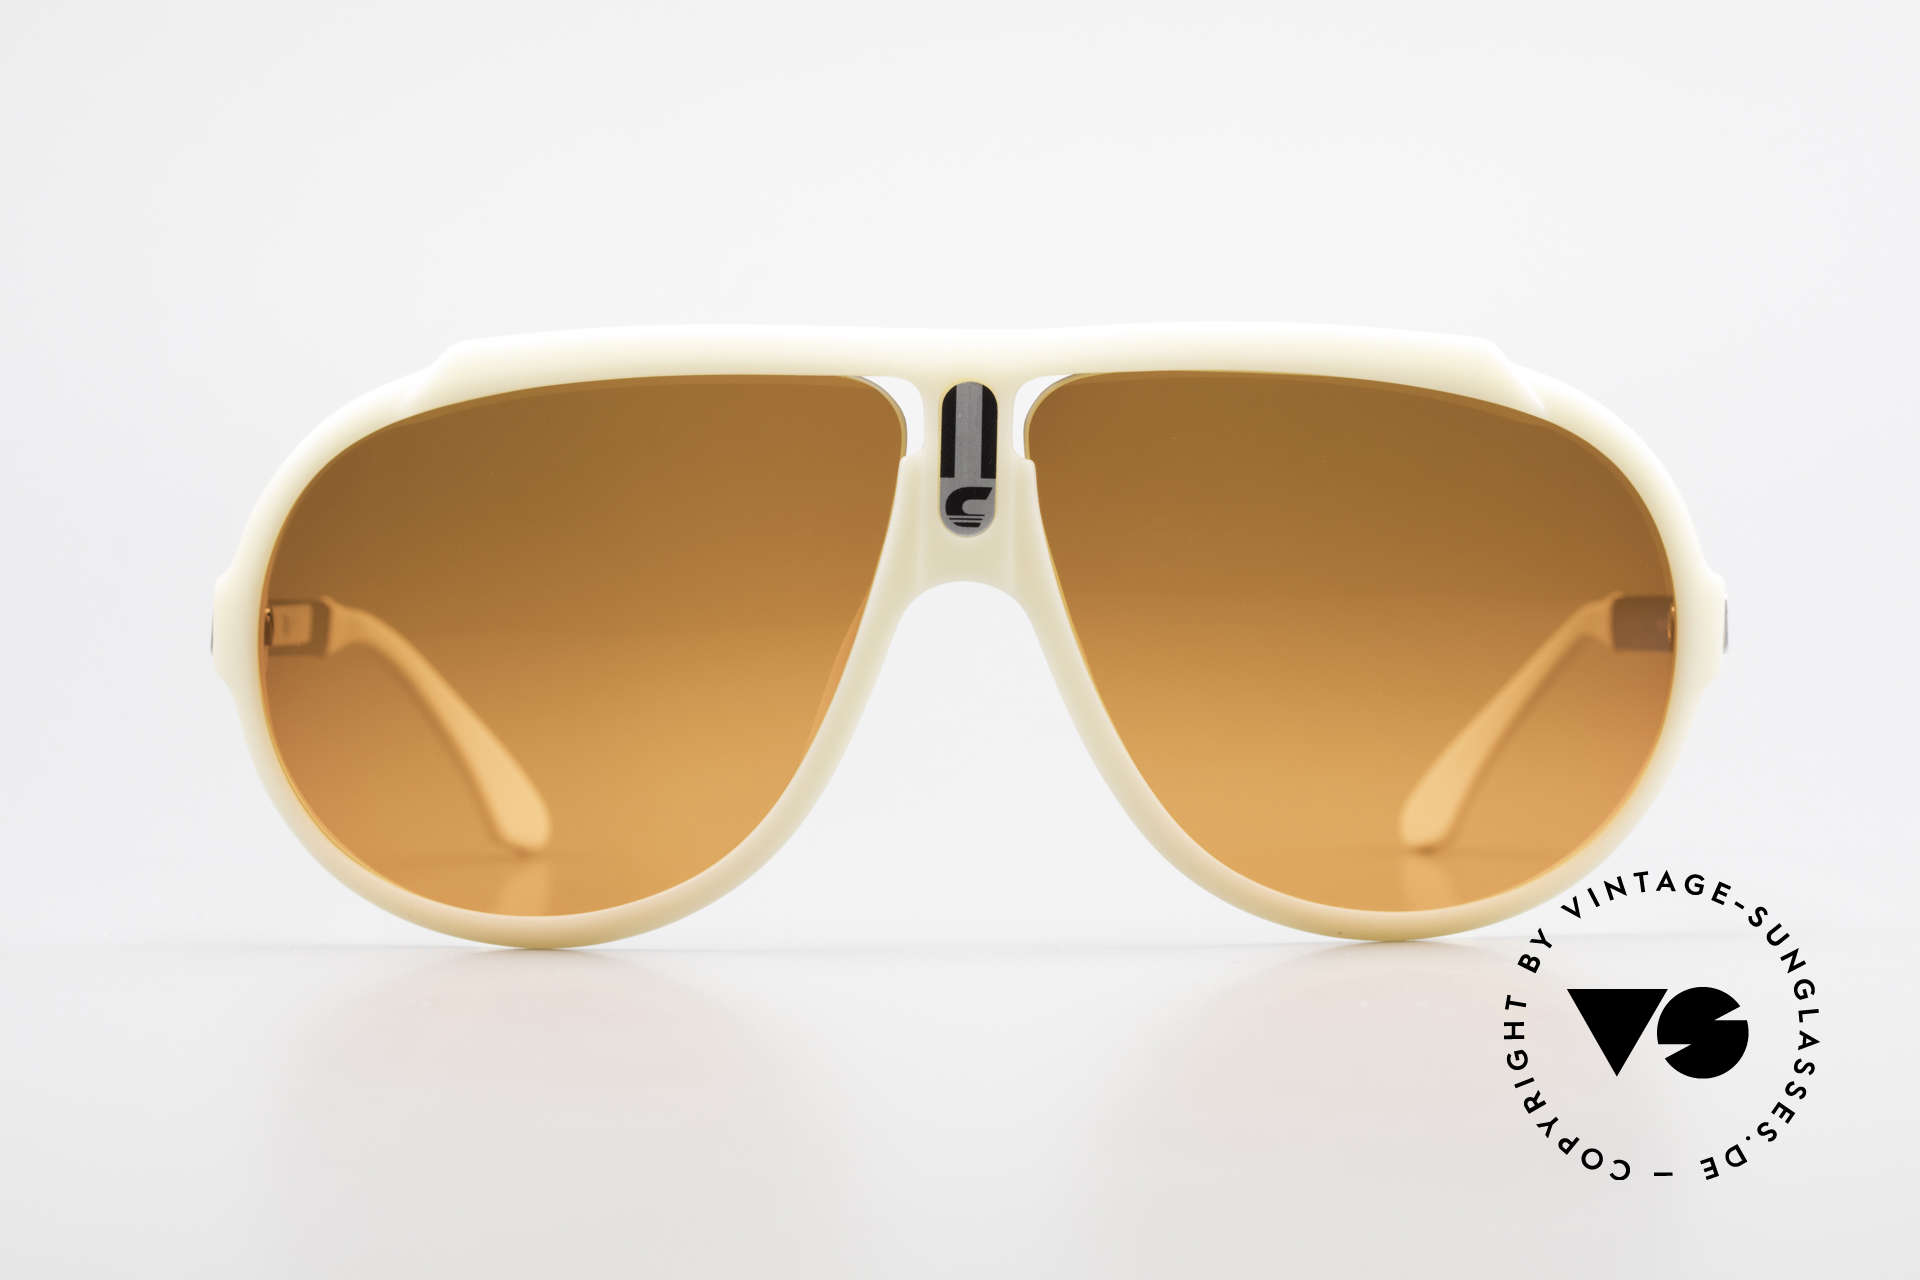 Carrera 5512 Miami Vice Sunset Sunglasses, famous movie sunglasses from 1984 (a true legend !!!), Made for Men